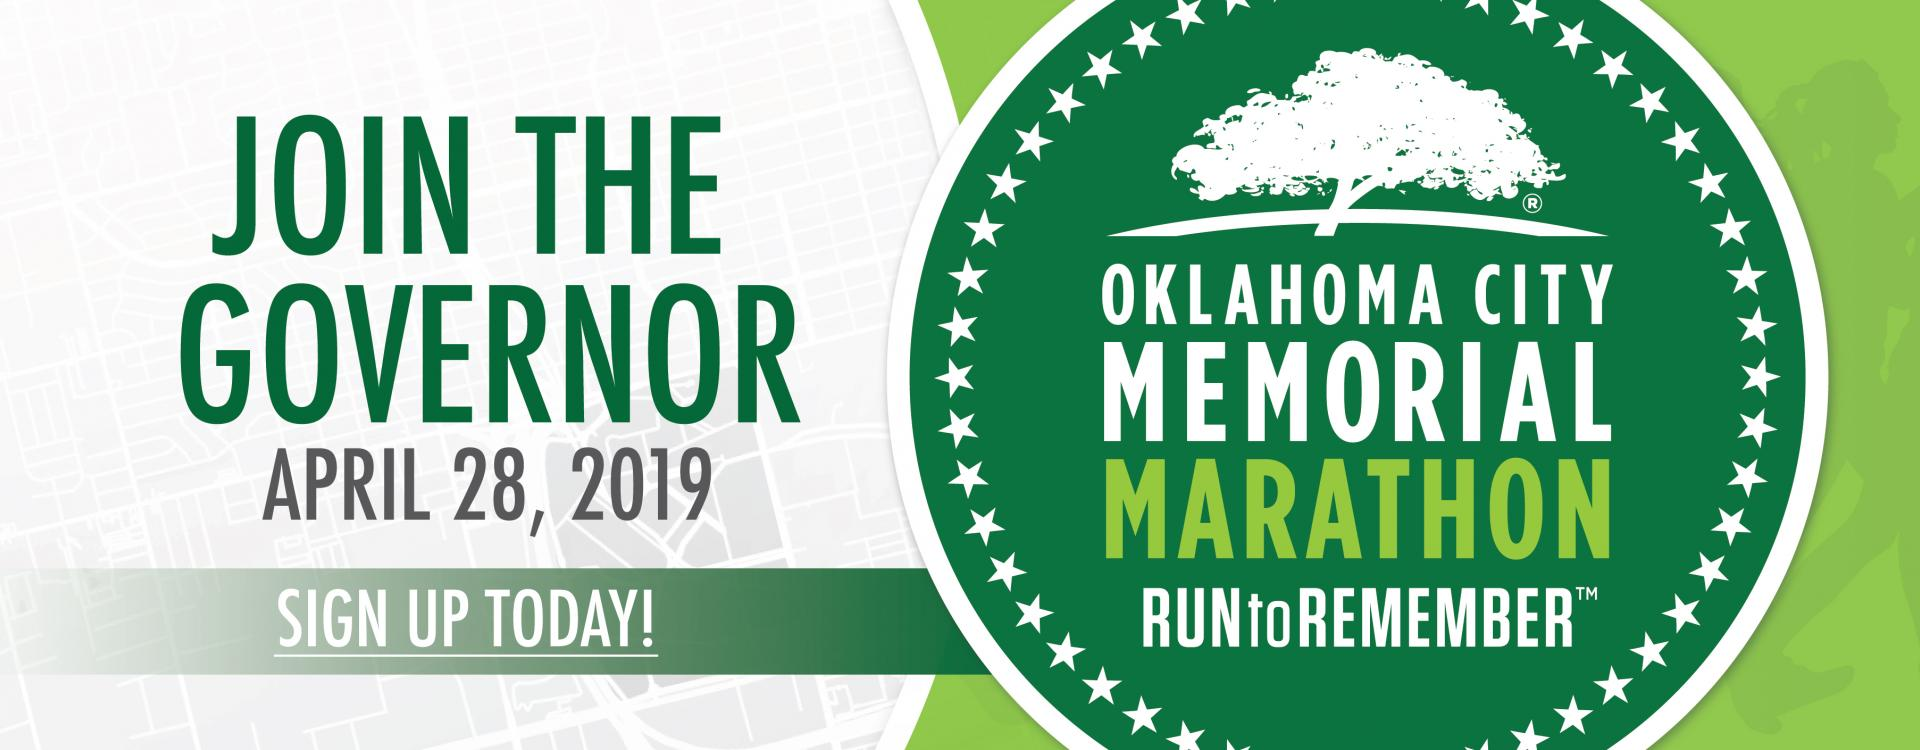 Join the Governor on April 28, 2019 for the Oklahoma City Memorial Marathon Run to Remember. Sign up today!